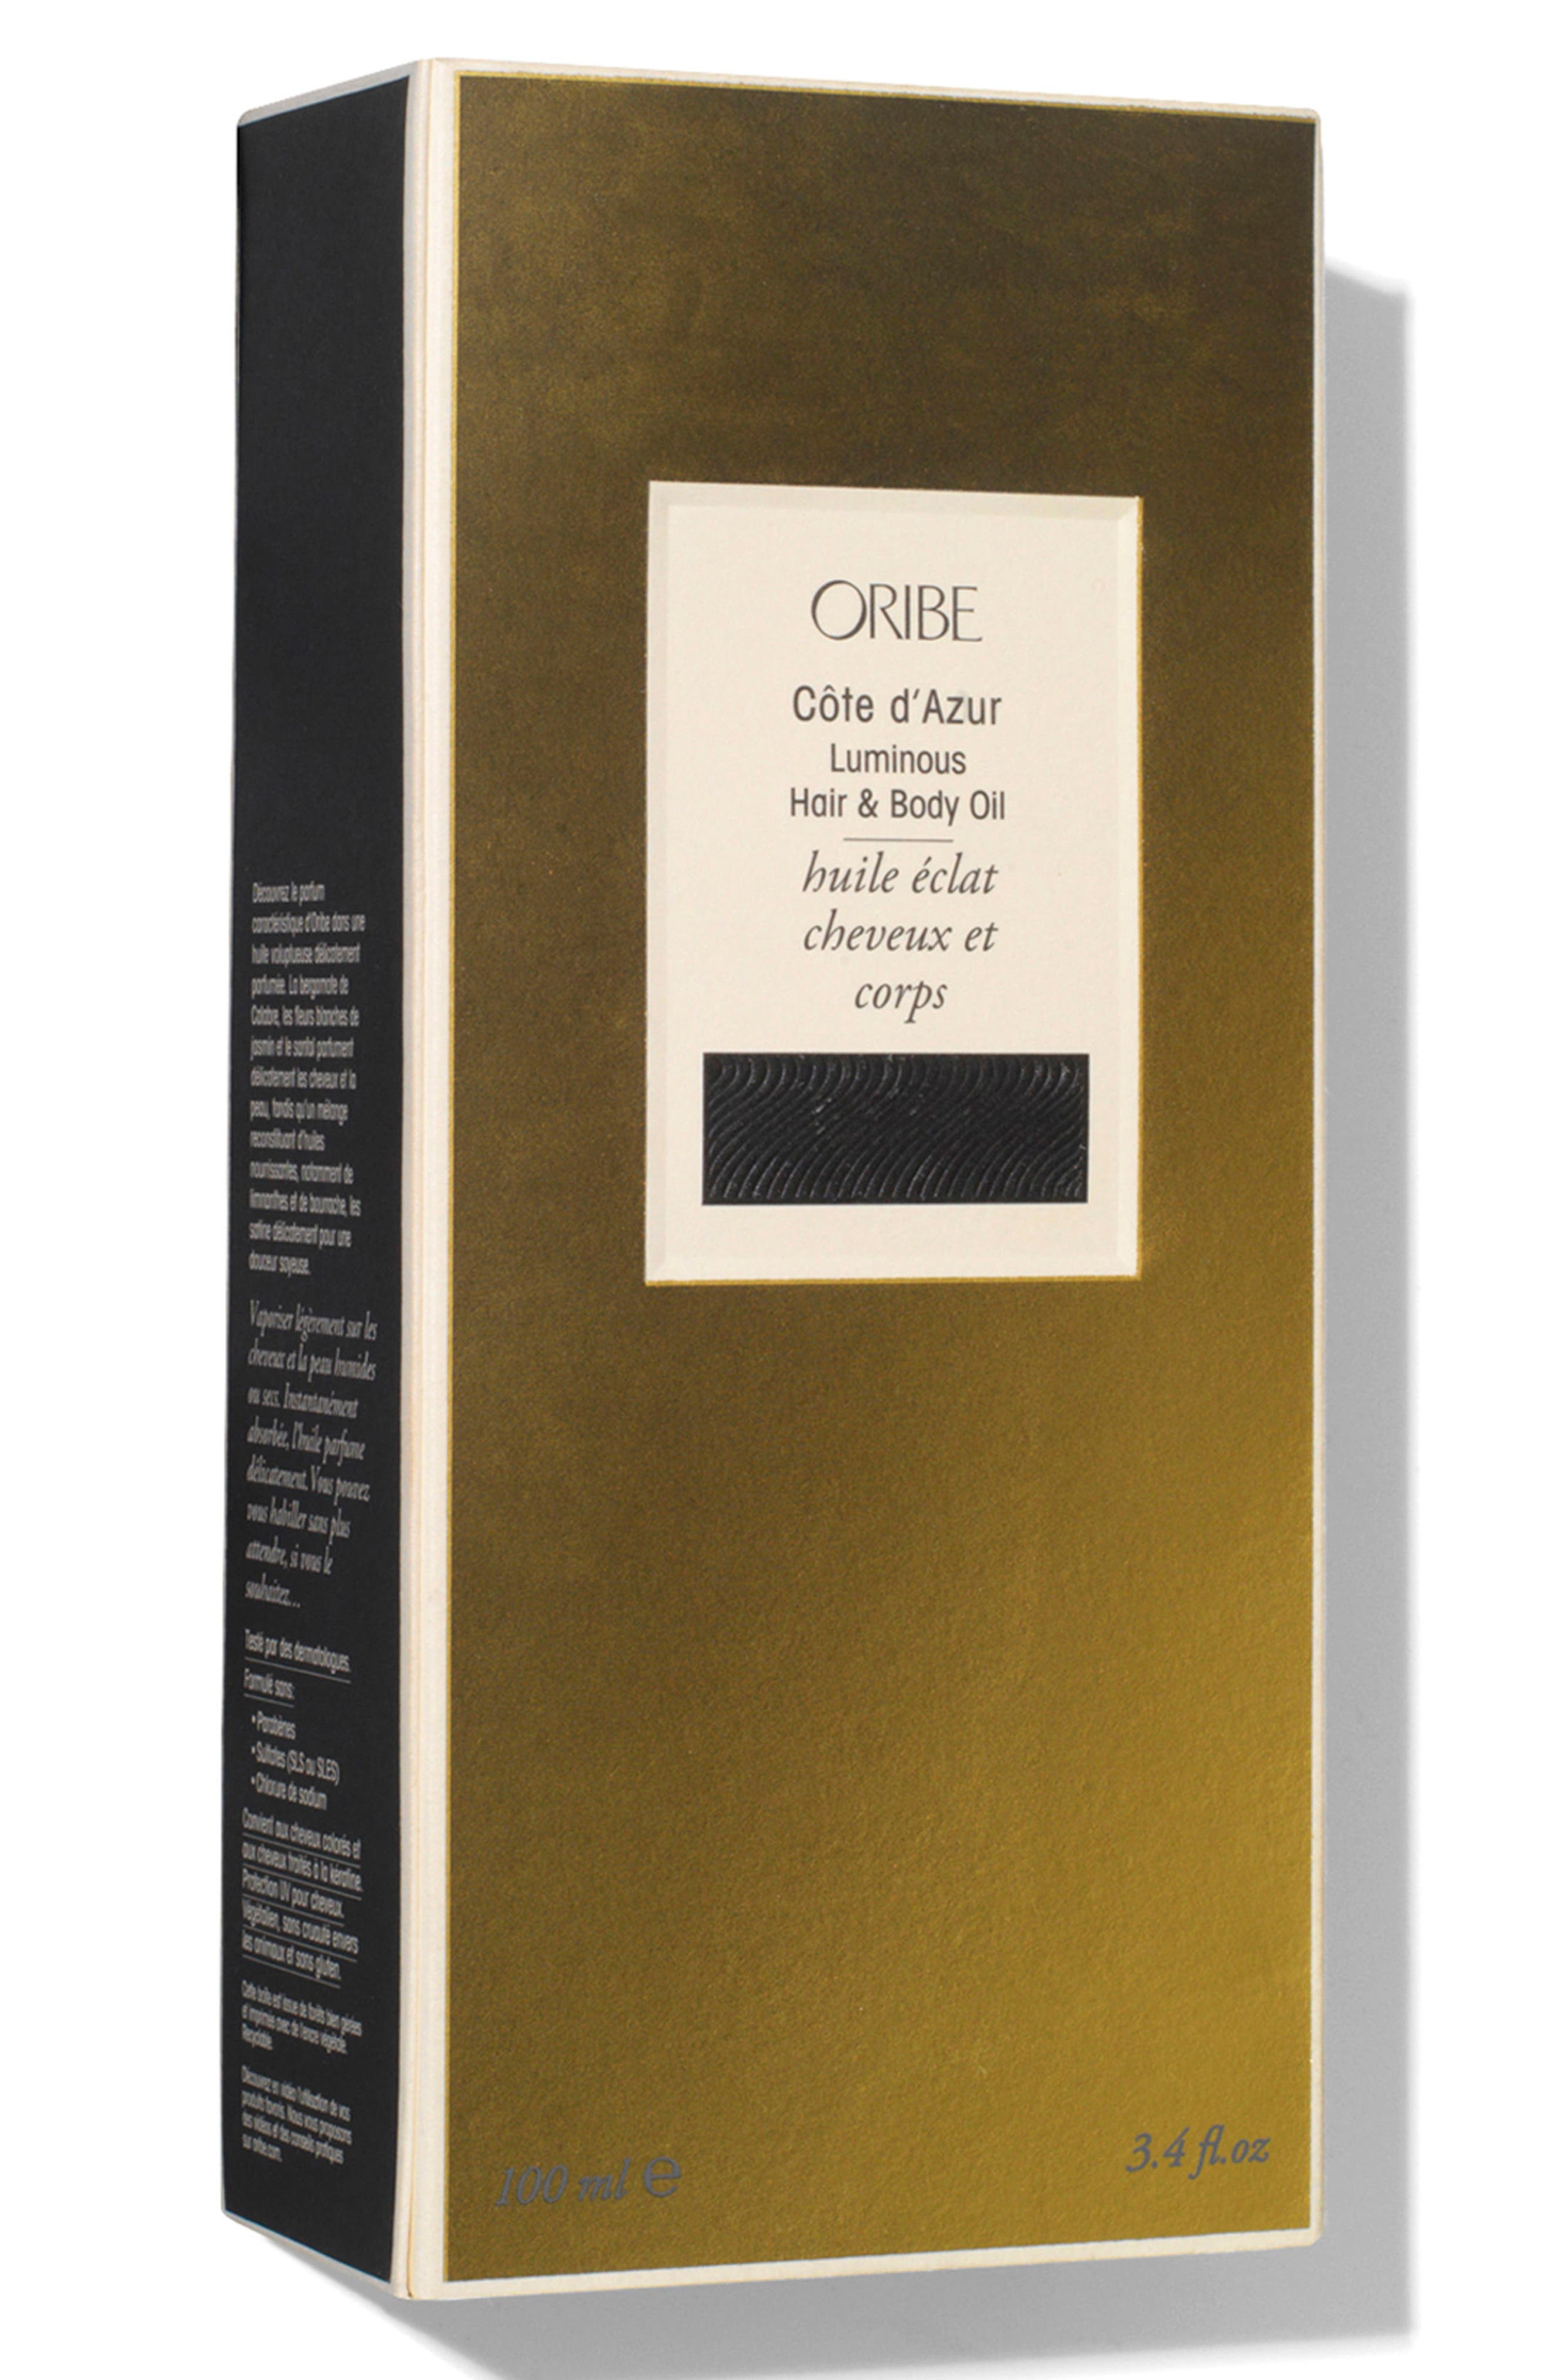 ORIBE, SPACE.NK.apothecary Oribe Côte d'Azur Luminous Hair & Body Oil, Alternate thumbnail 3, color, 000